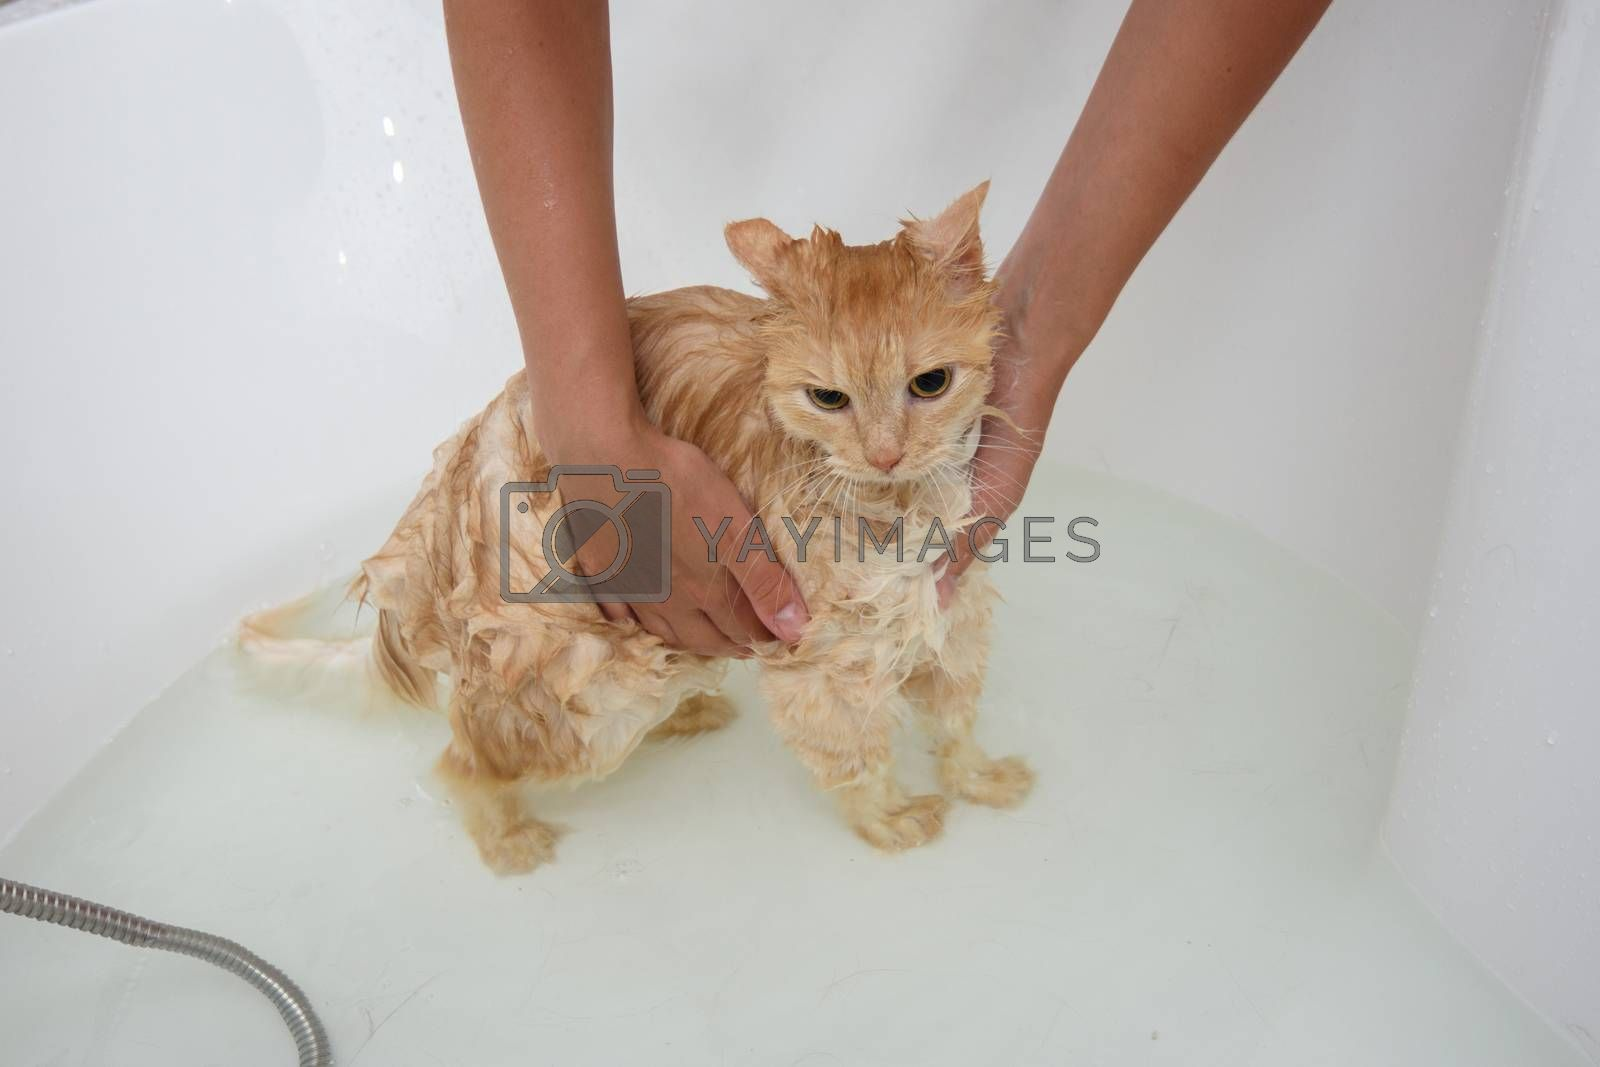 The cat that is bathed in the bathroom does not like water by Madhourse